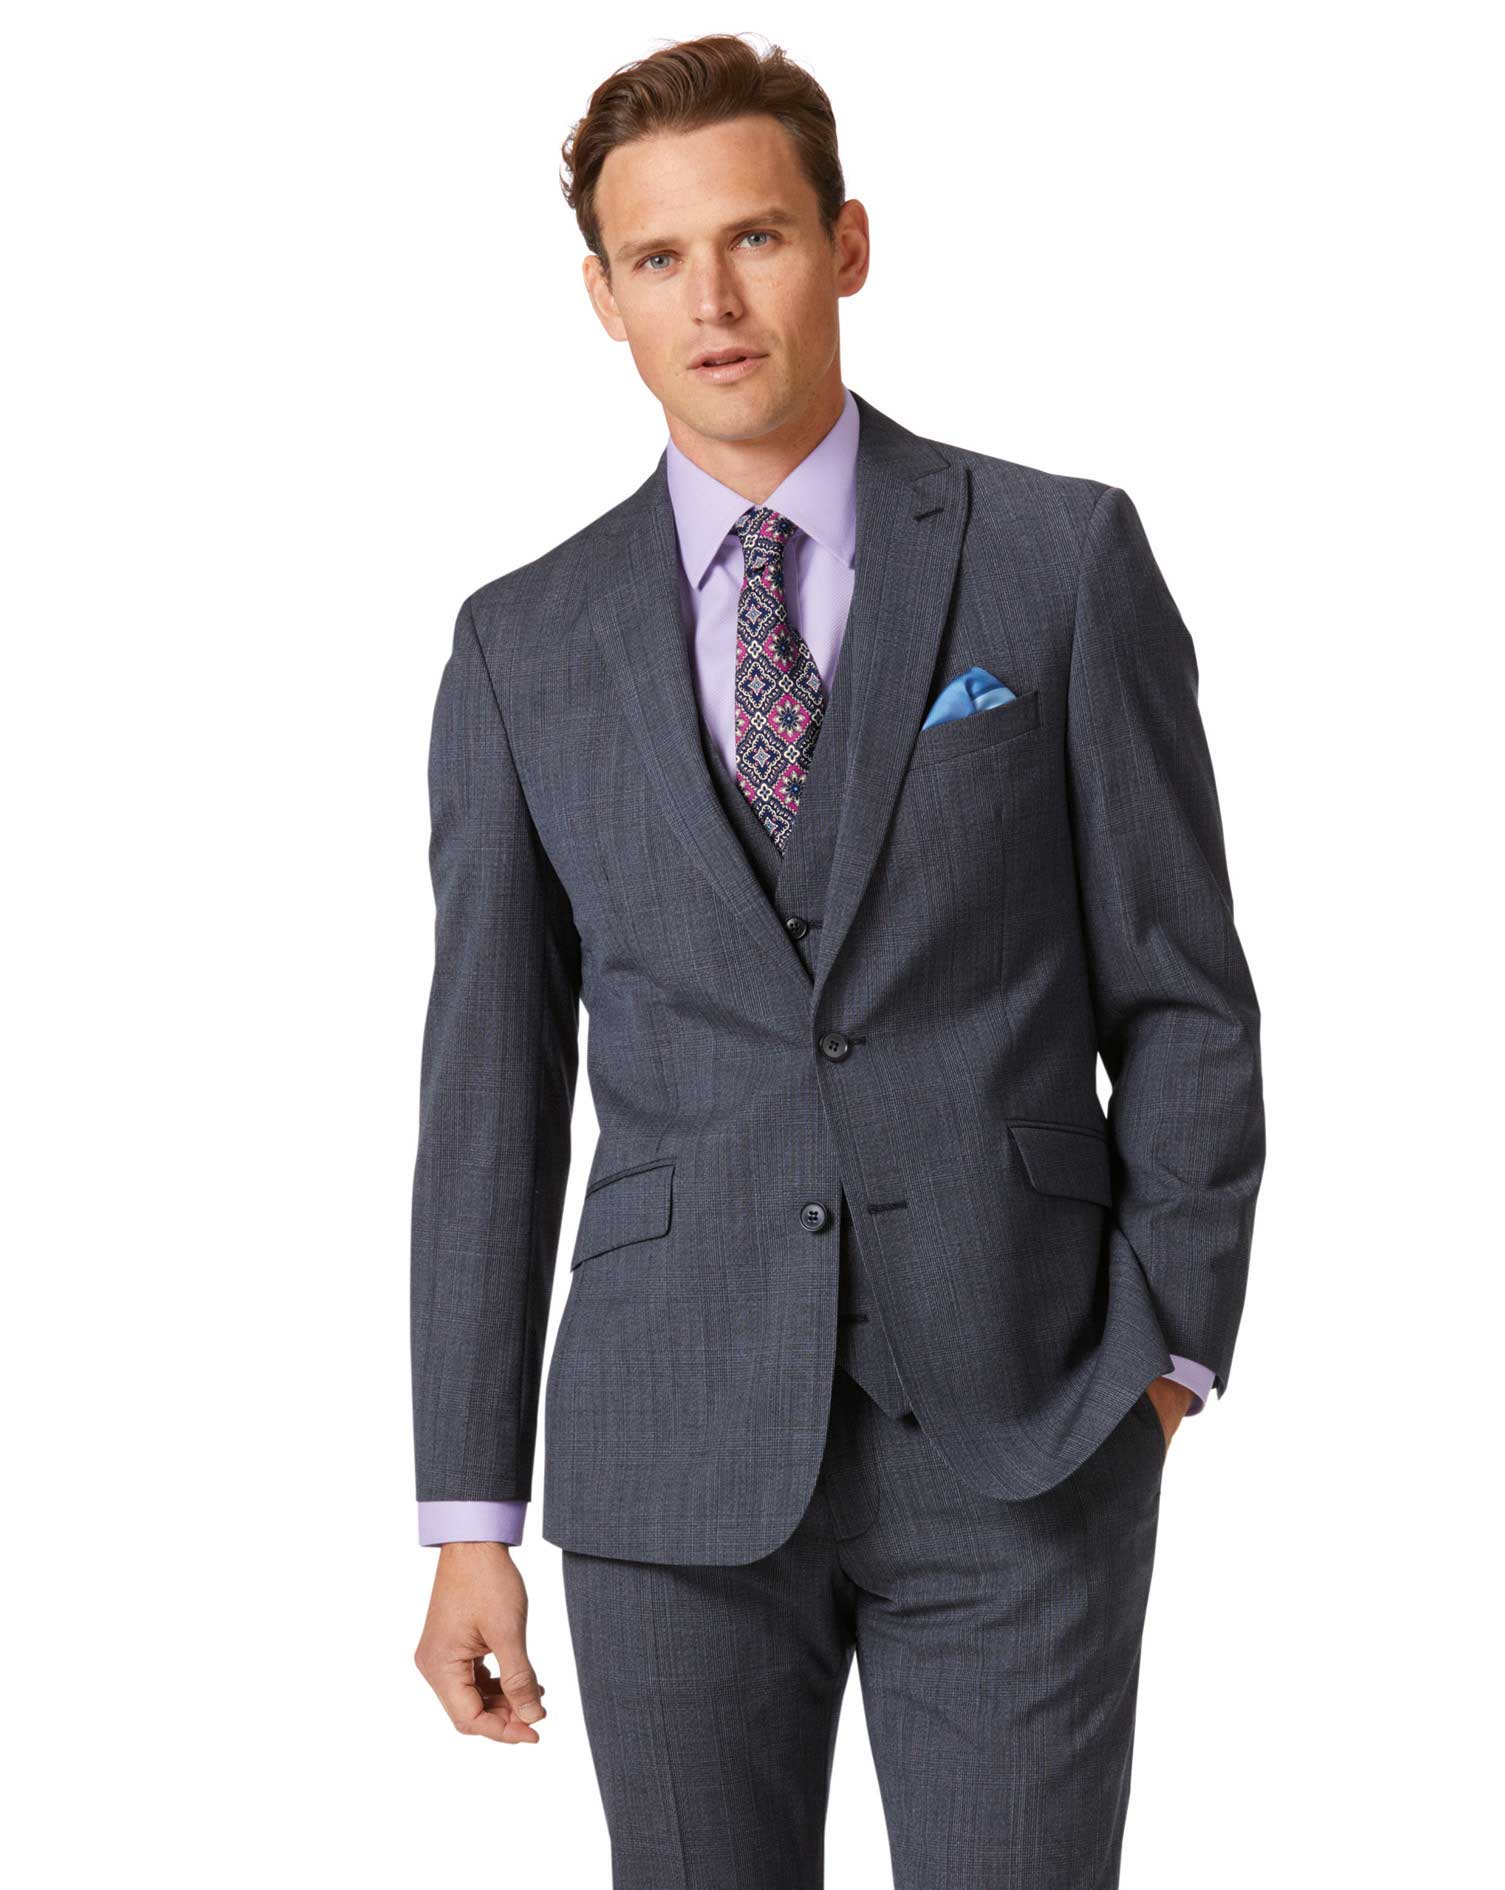 Image of Charles Tyrwhitt Airforce Blue Check Slim Fit Twist Business Suit Wool Jacket Size 38 Regular by Charles Tyrwhitt